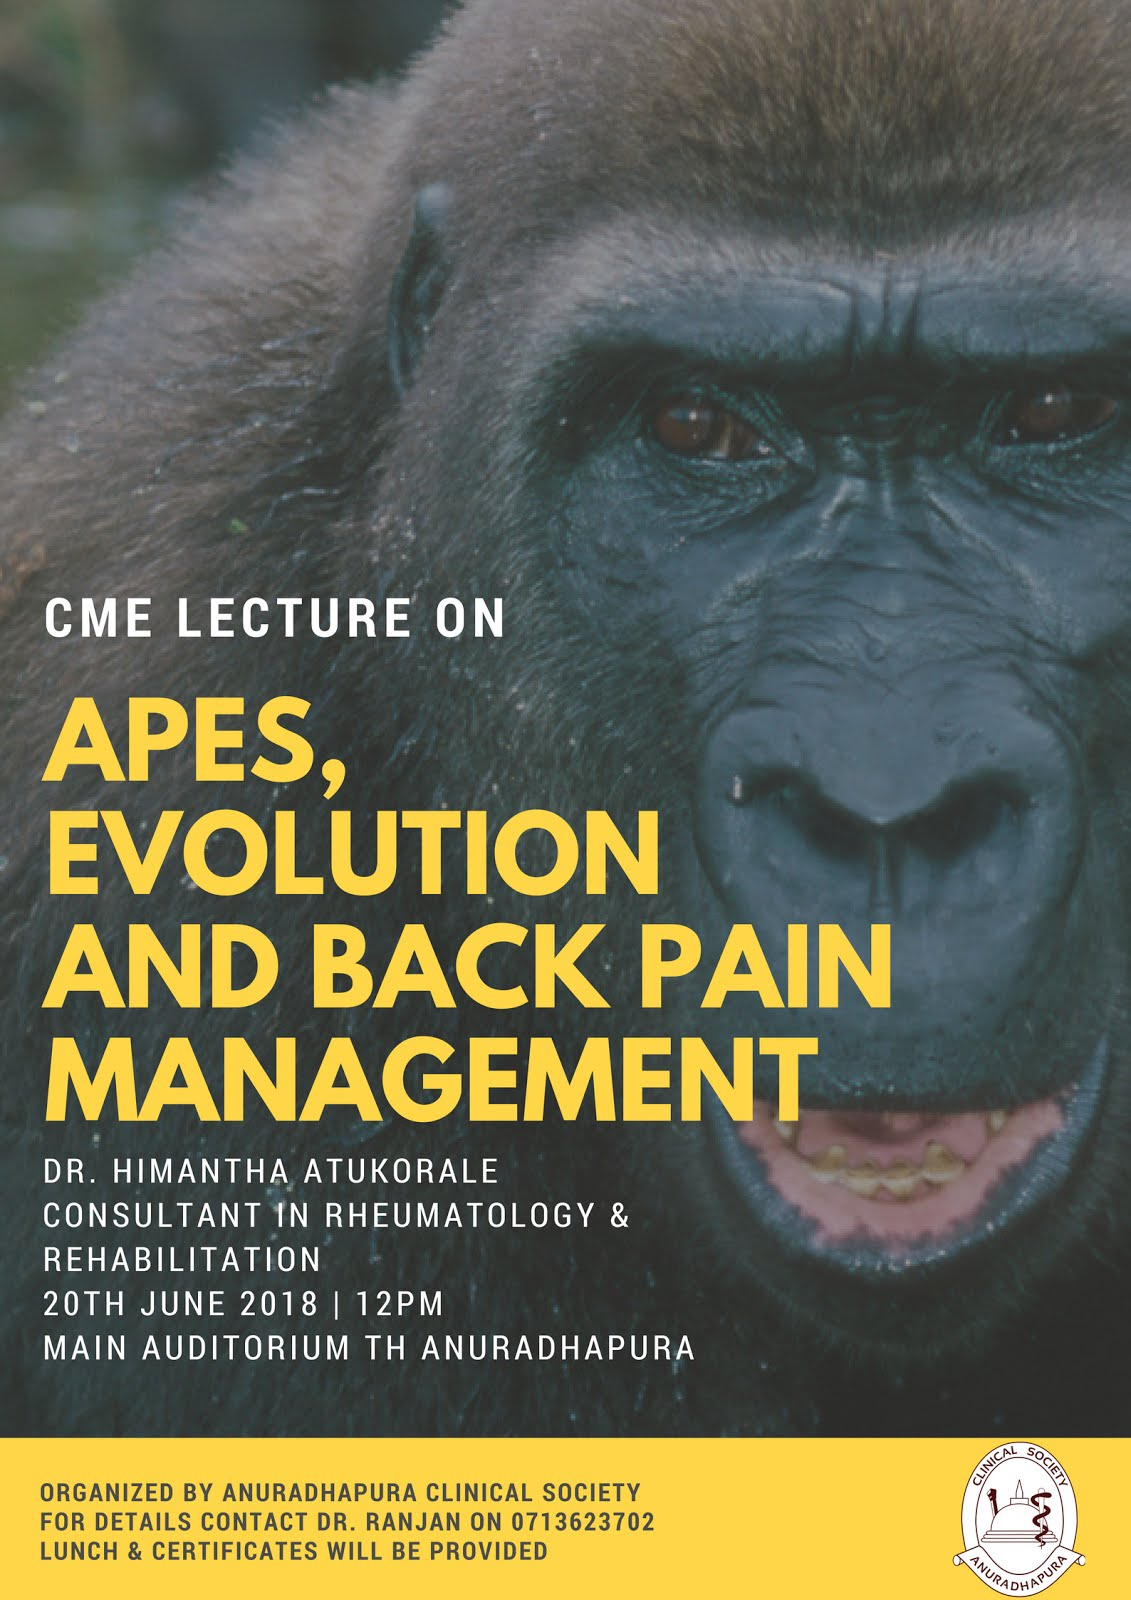 Apes, Evolution & Backpain Management